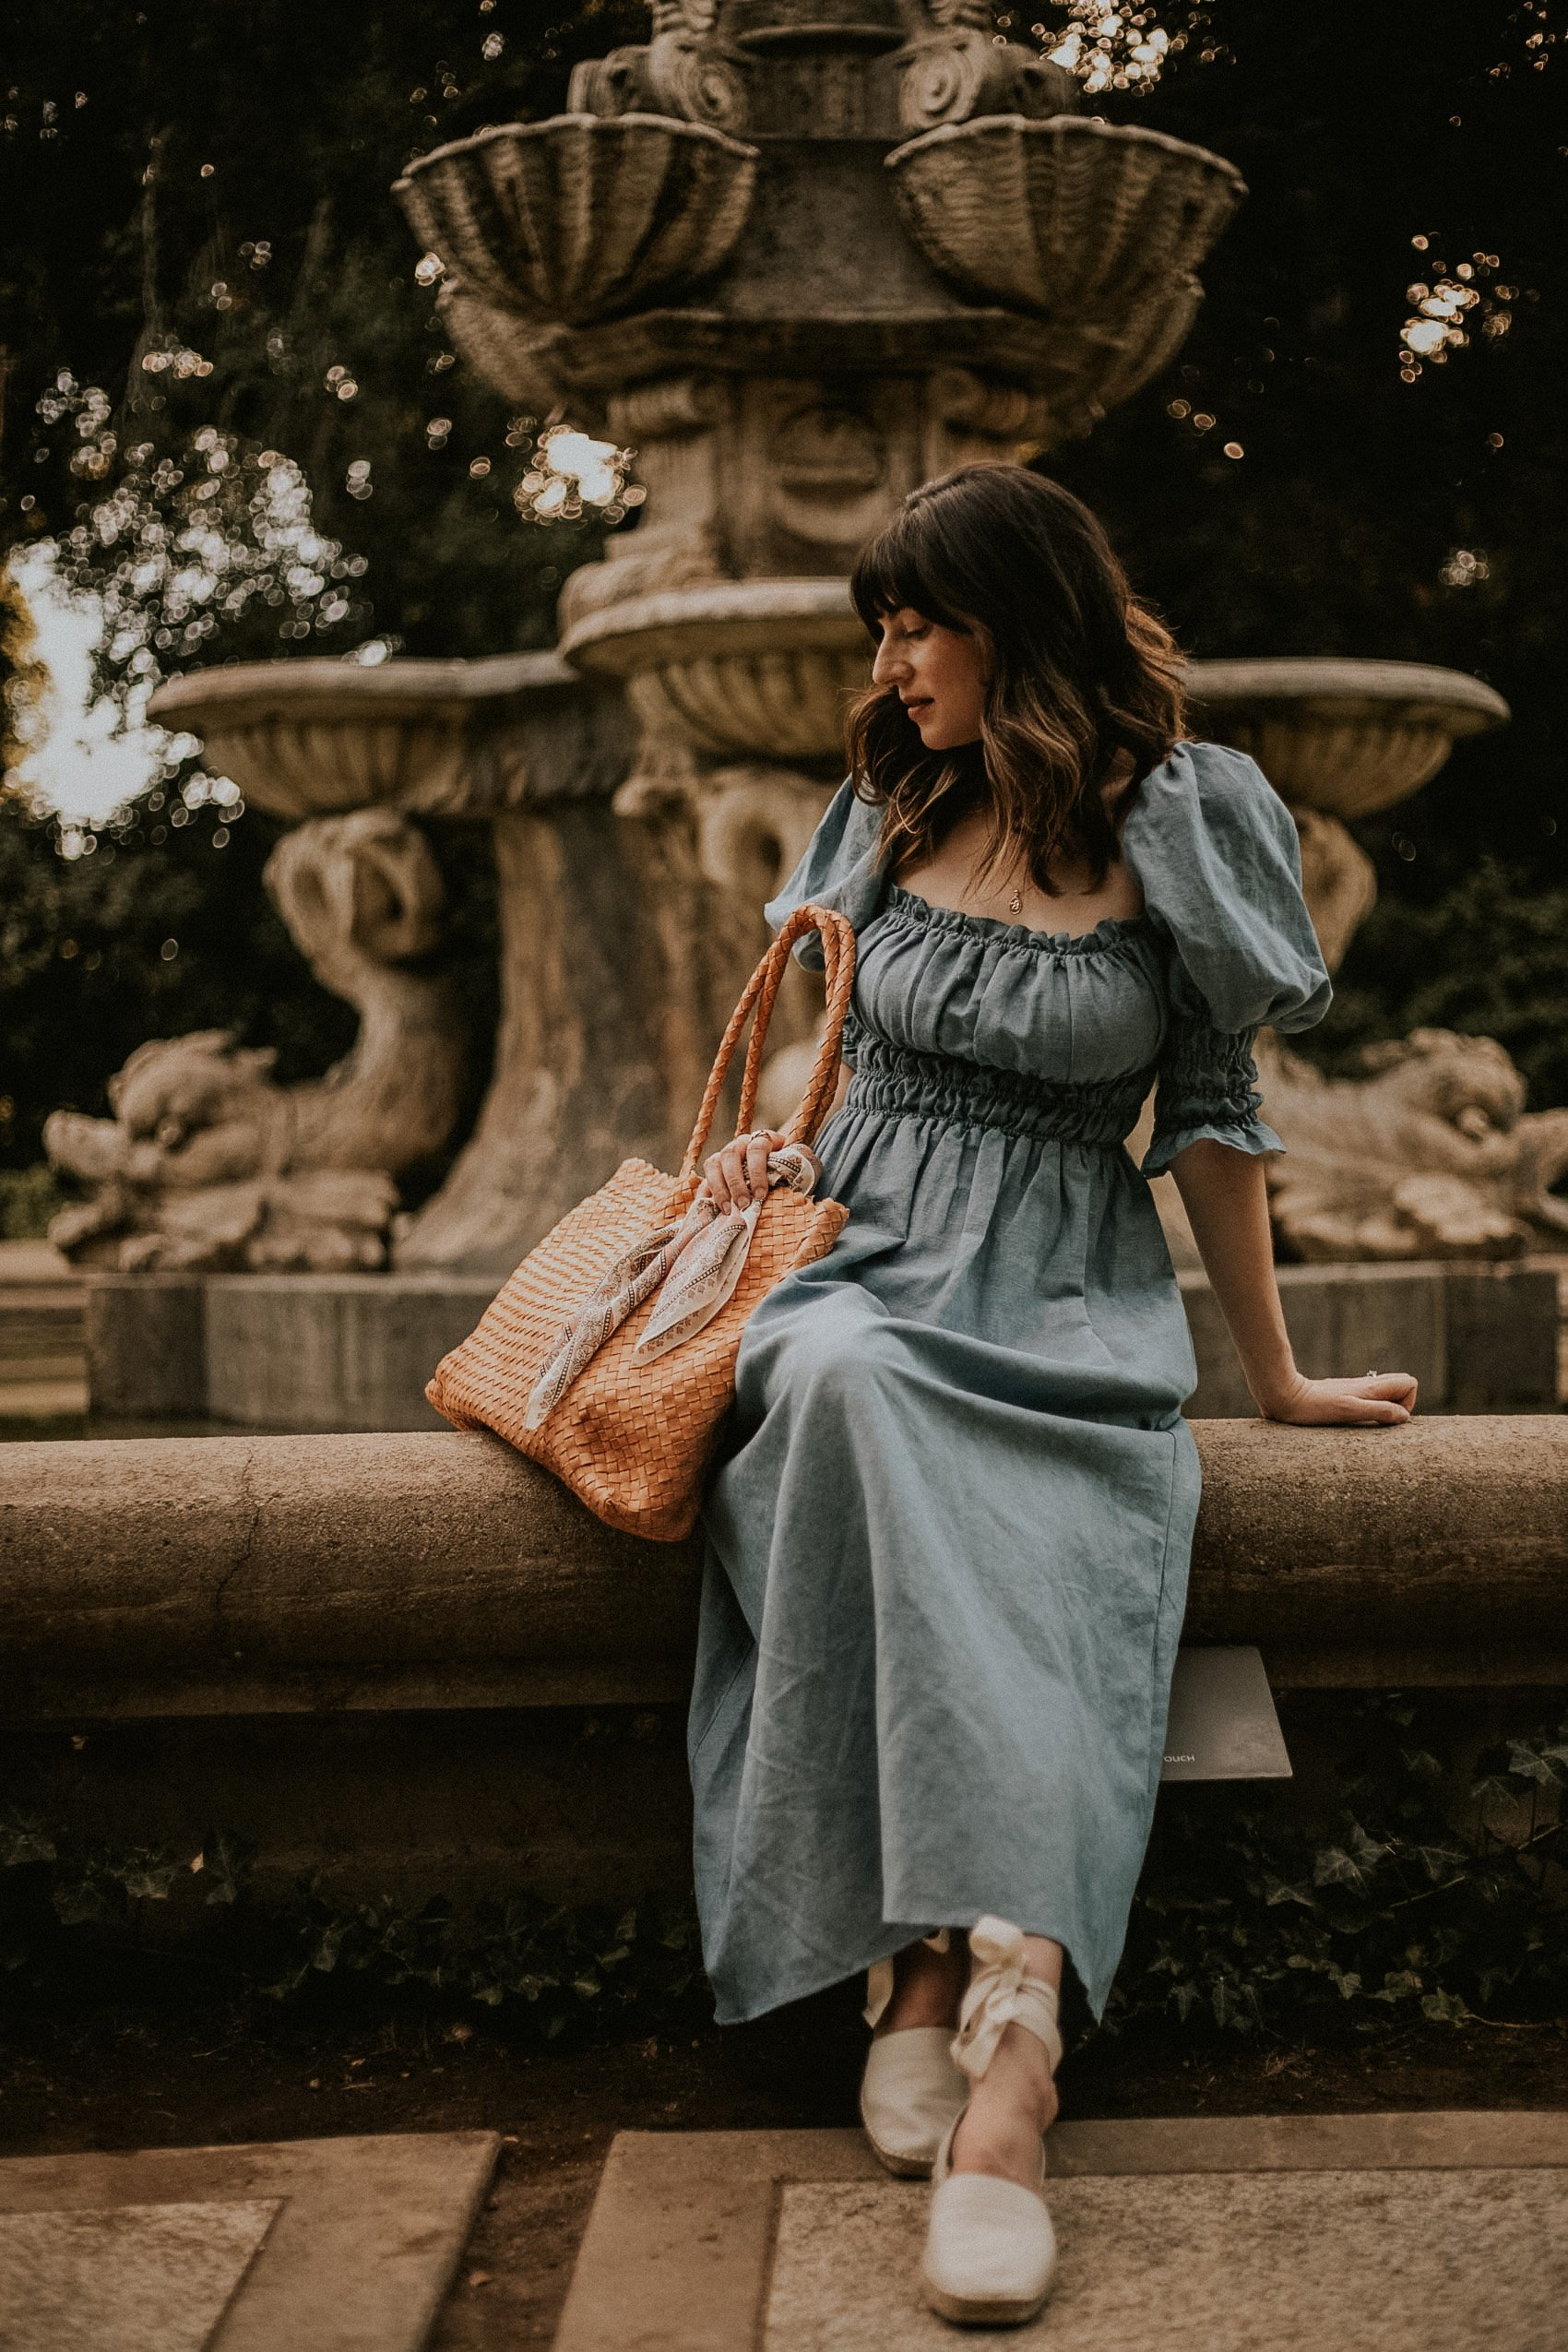 Fashion Blogger at European Fountain at Huntington Gardens with Milaner Bag and Linen Dress